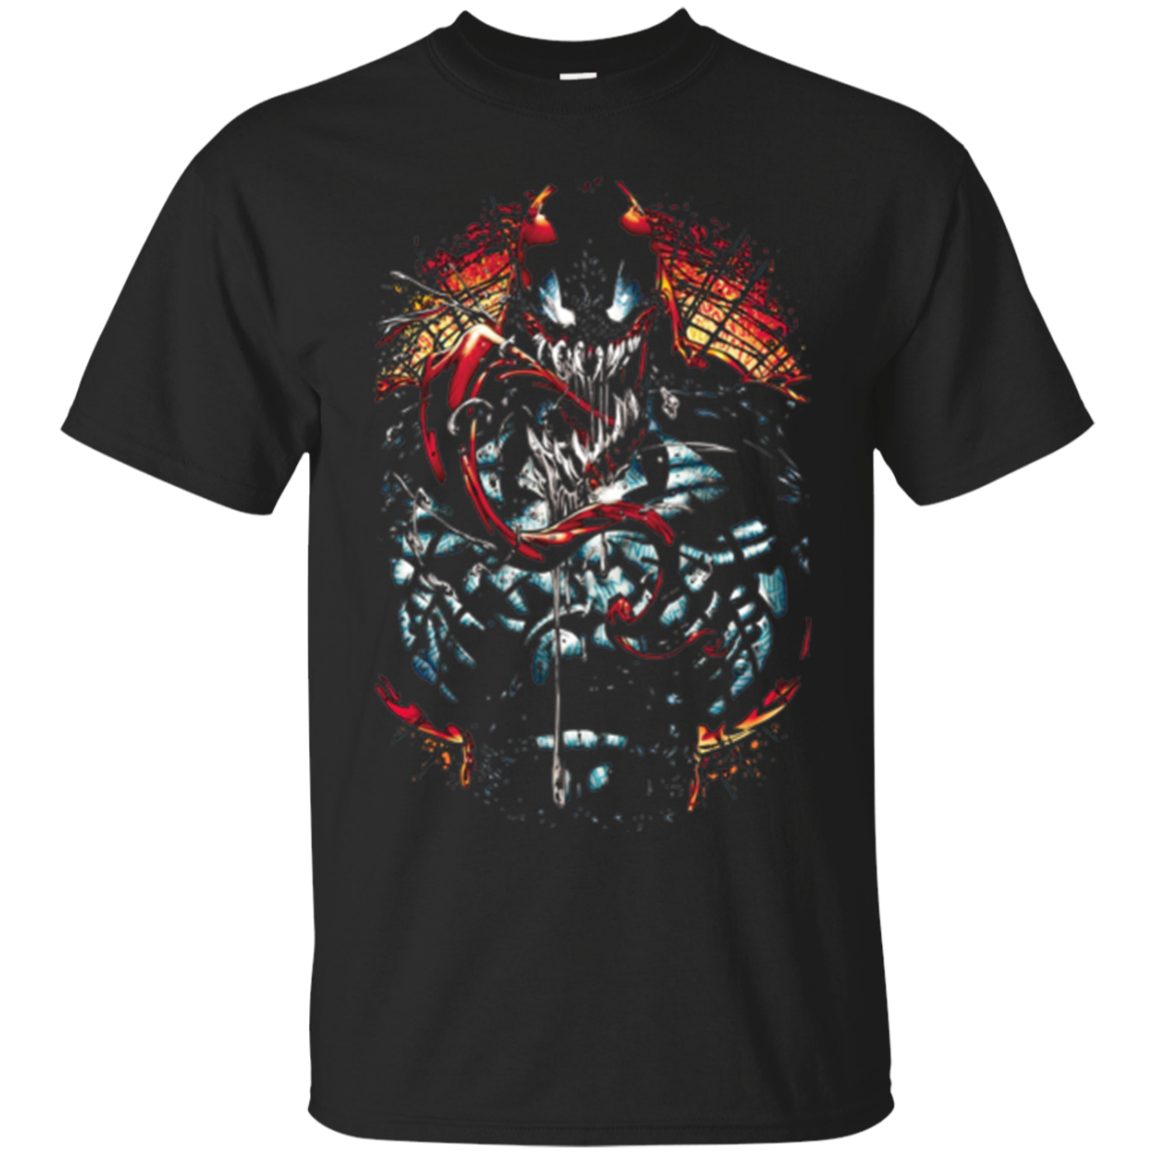 Carnage Fear Graphic T Shirt